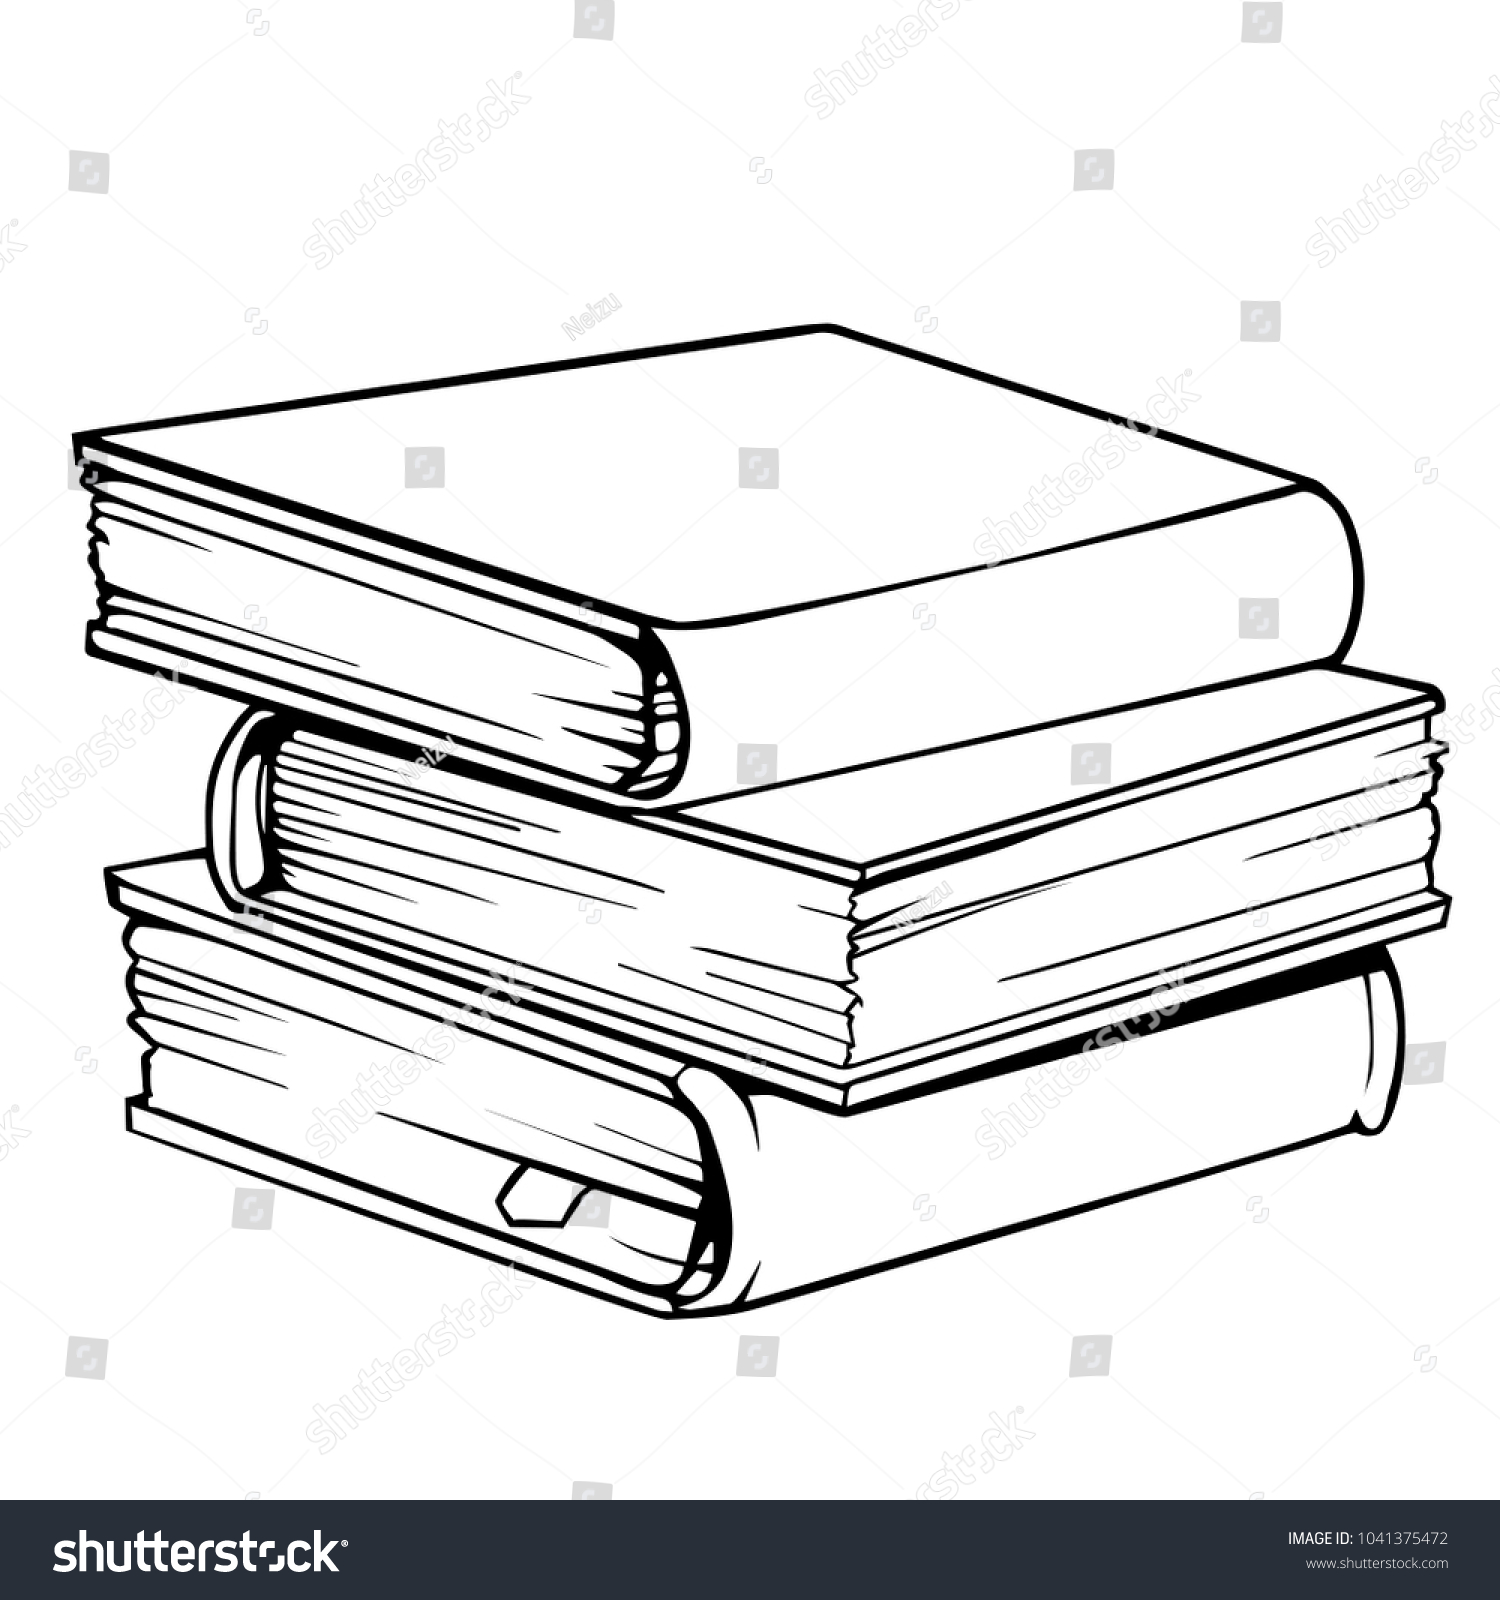 vector drawing pile three books stock vector (royalty free